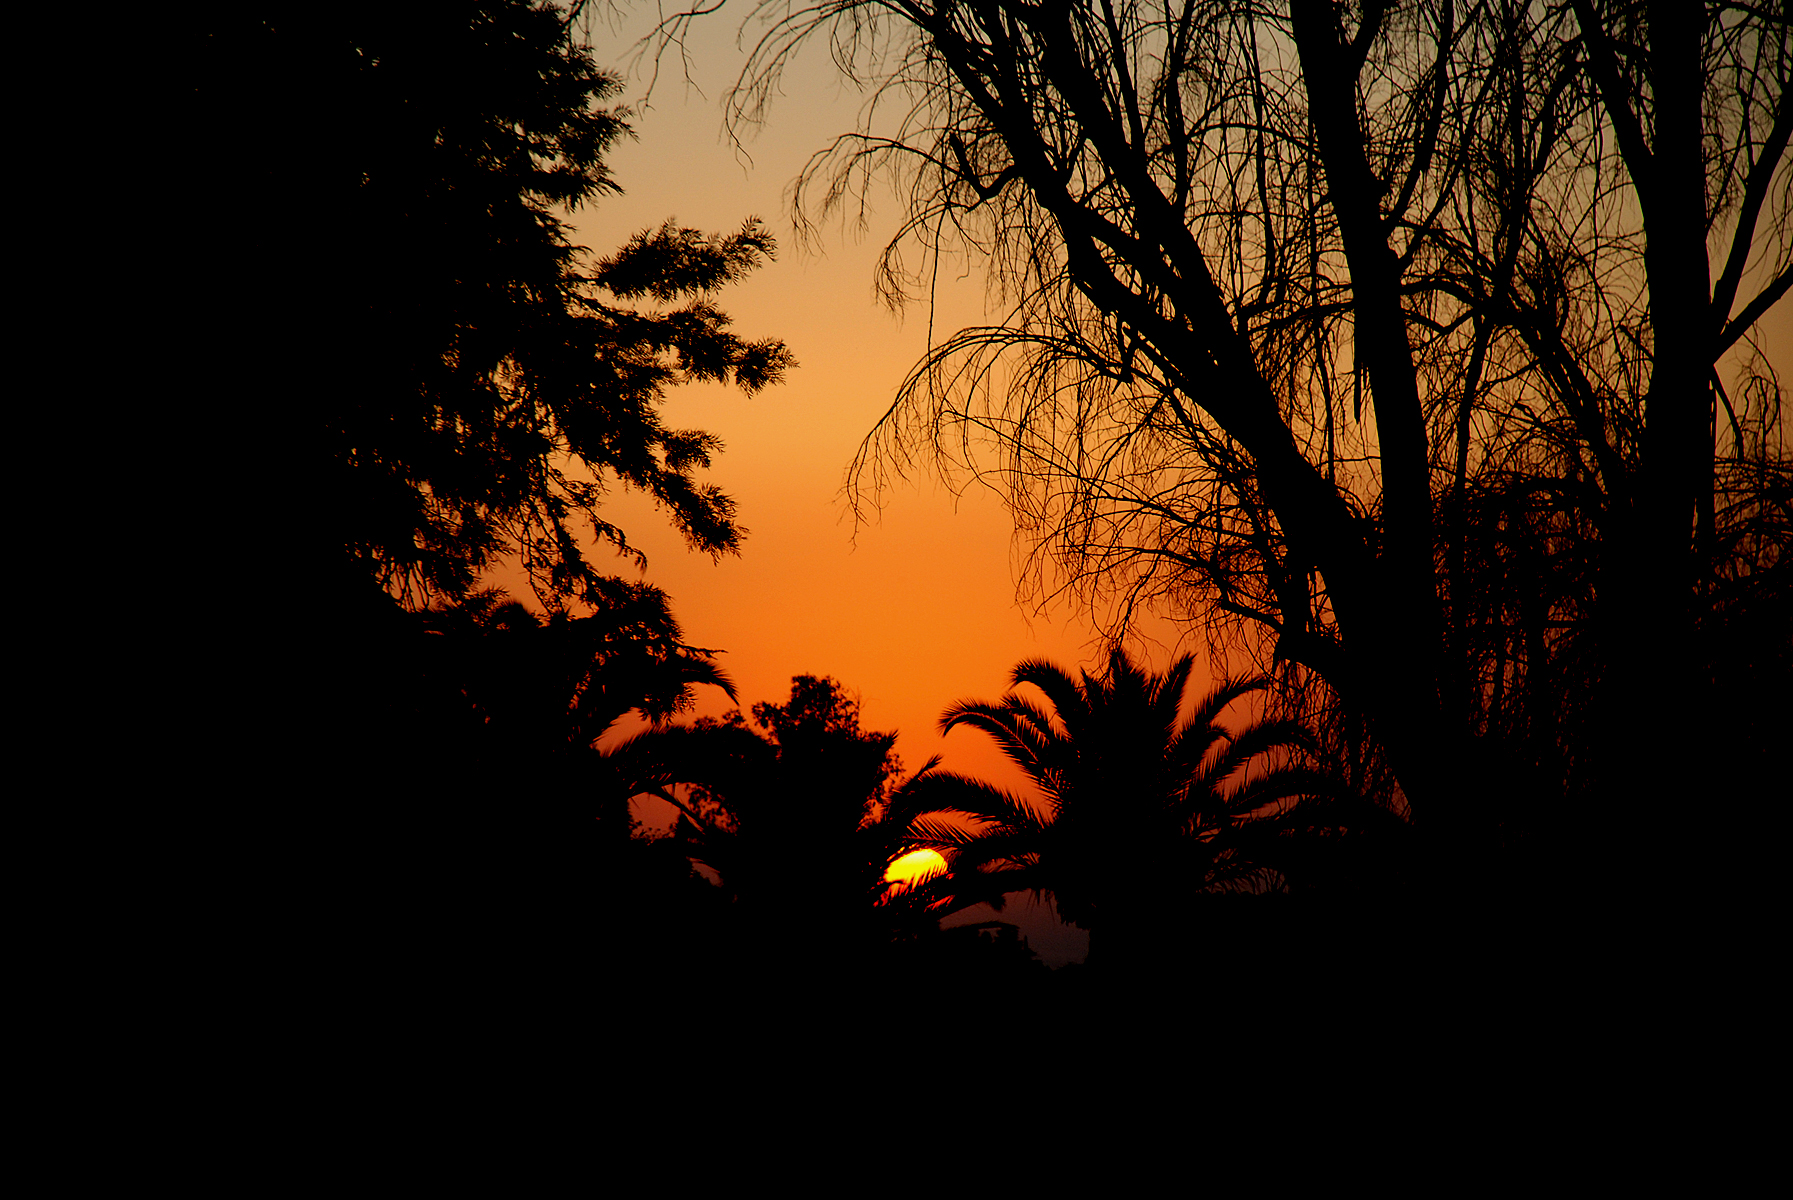 Sunset Through Palms, Black, Bspo06, Dusk, Orange, HQ Photo